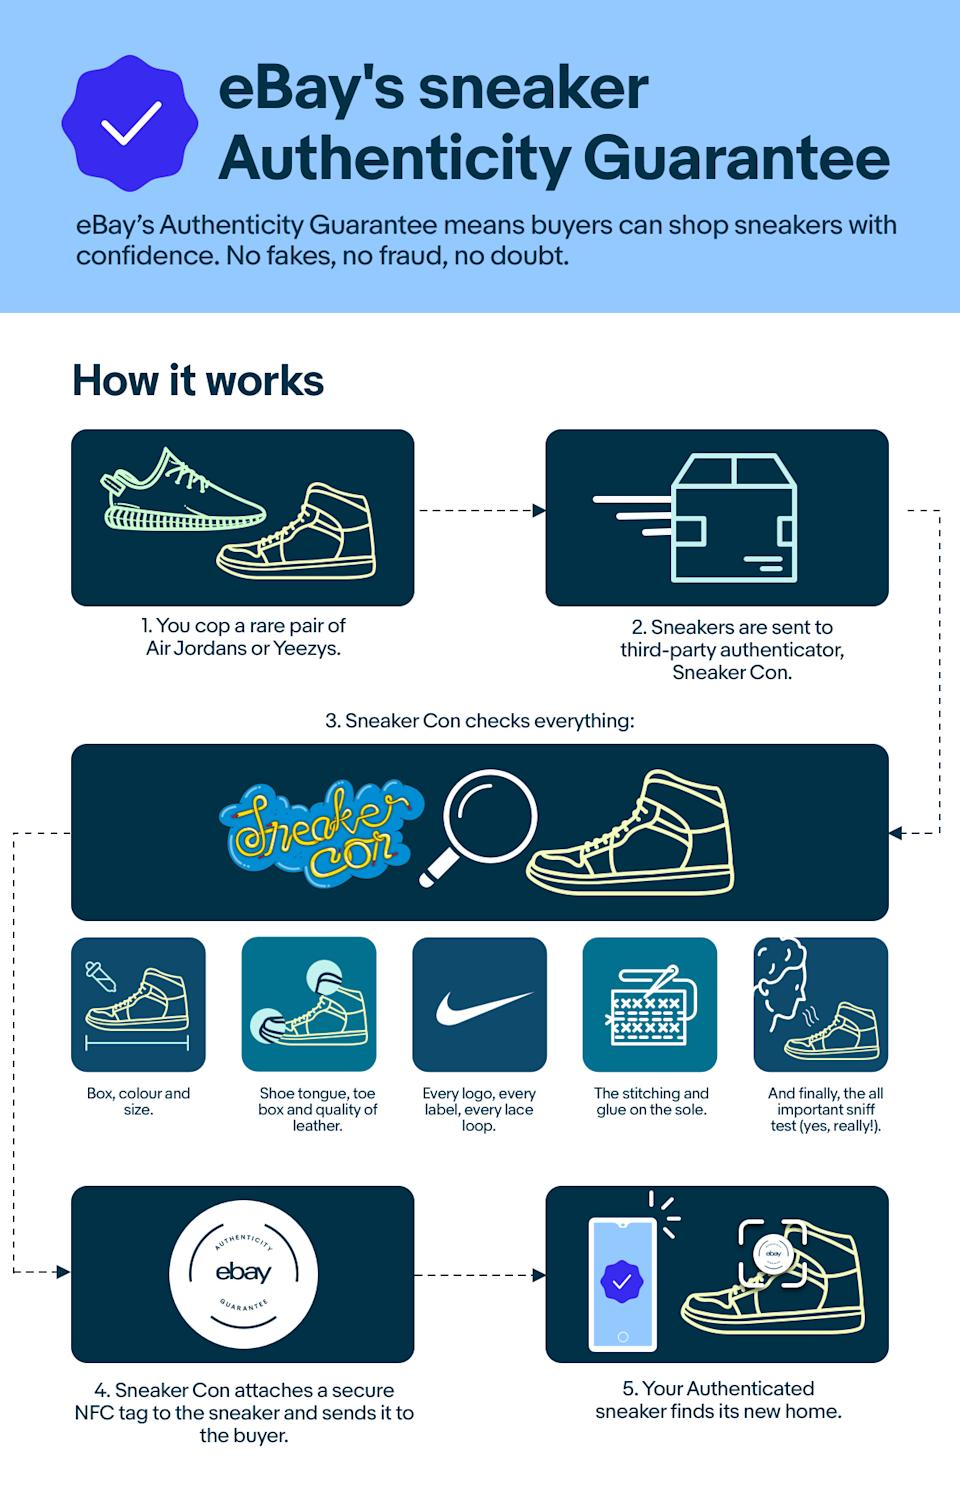 An infographic showing how eBay's sneaker authentication process works.